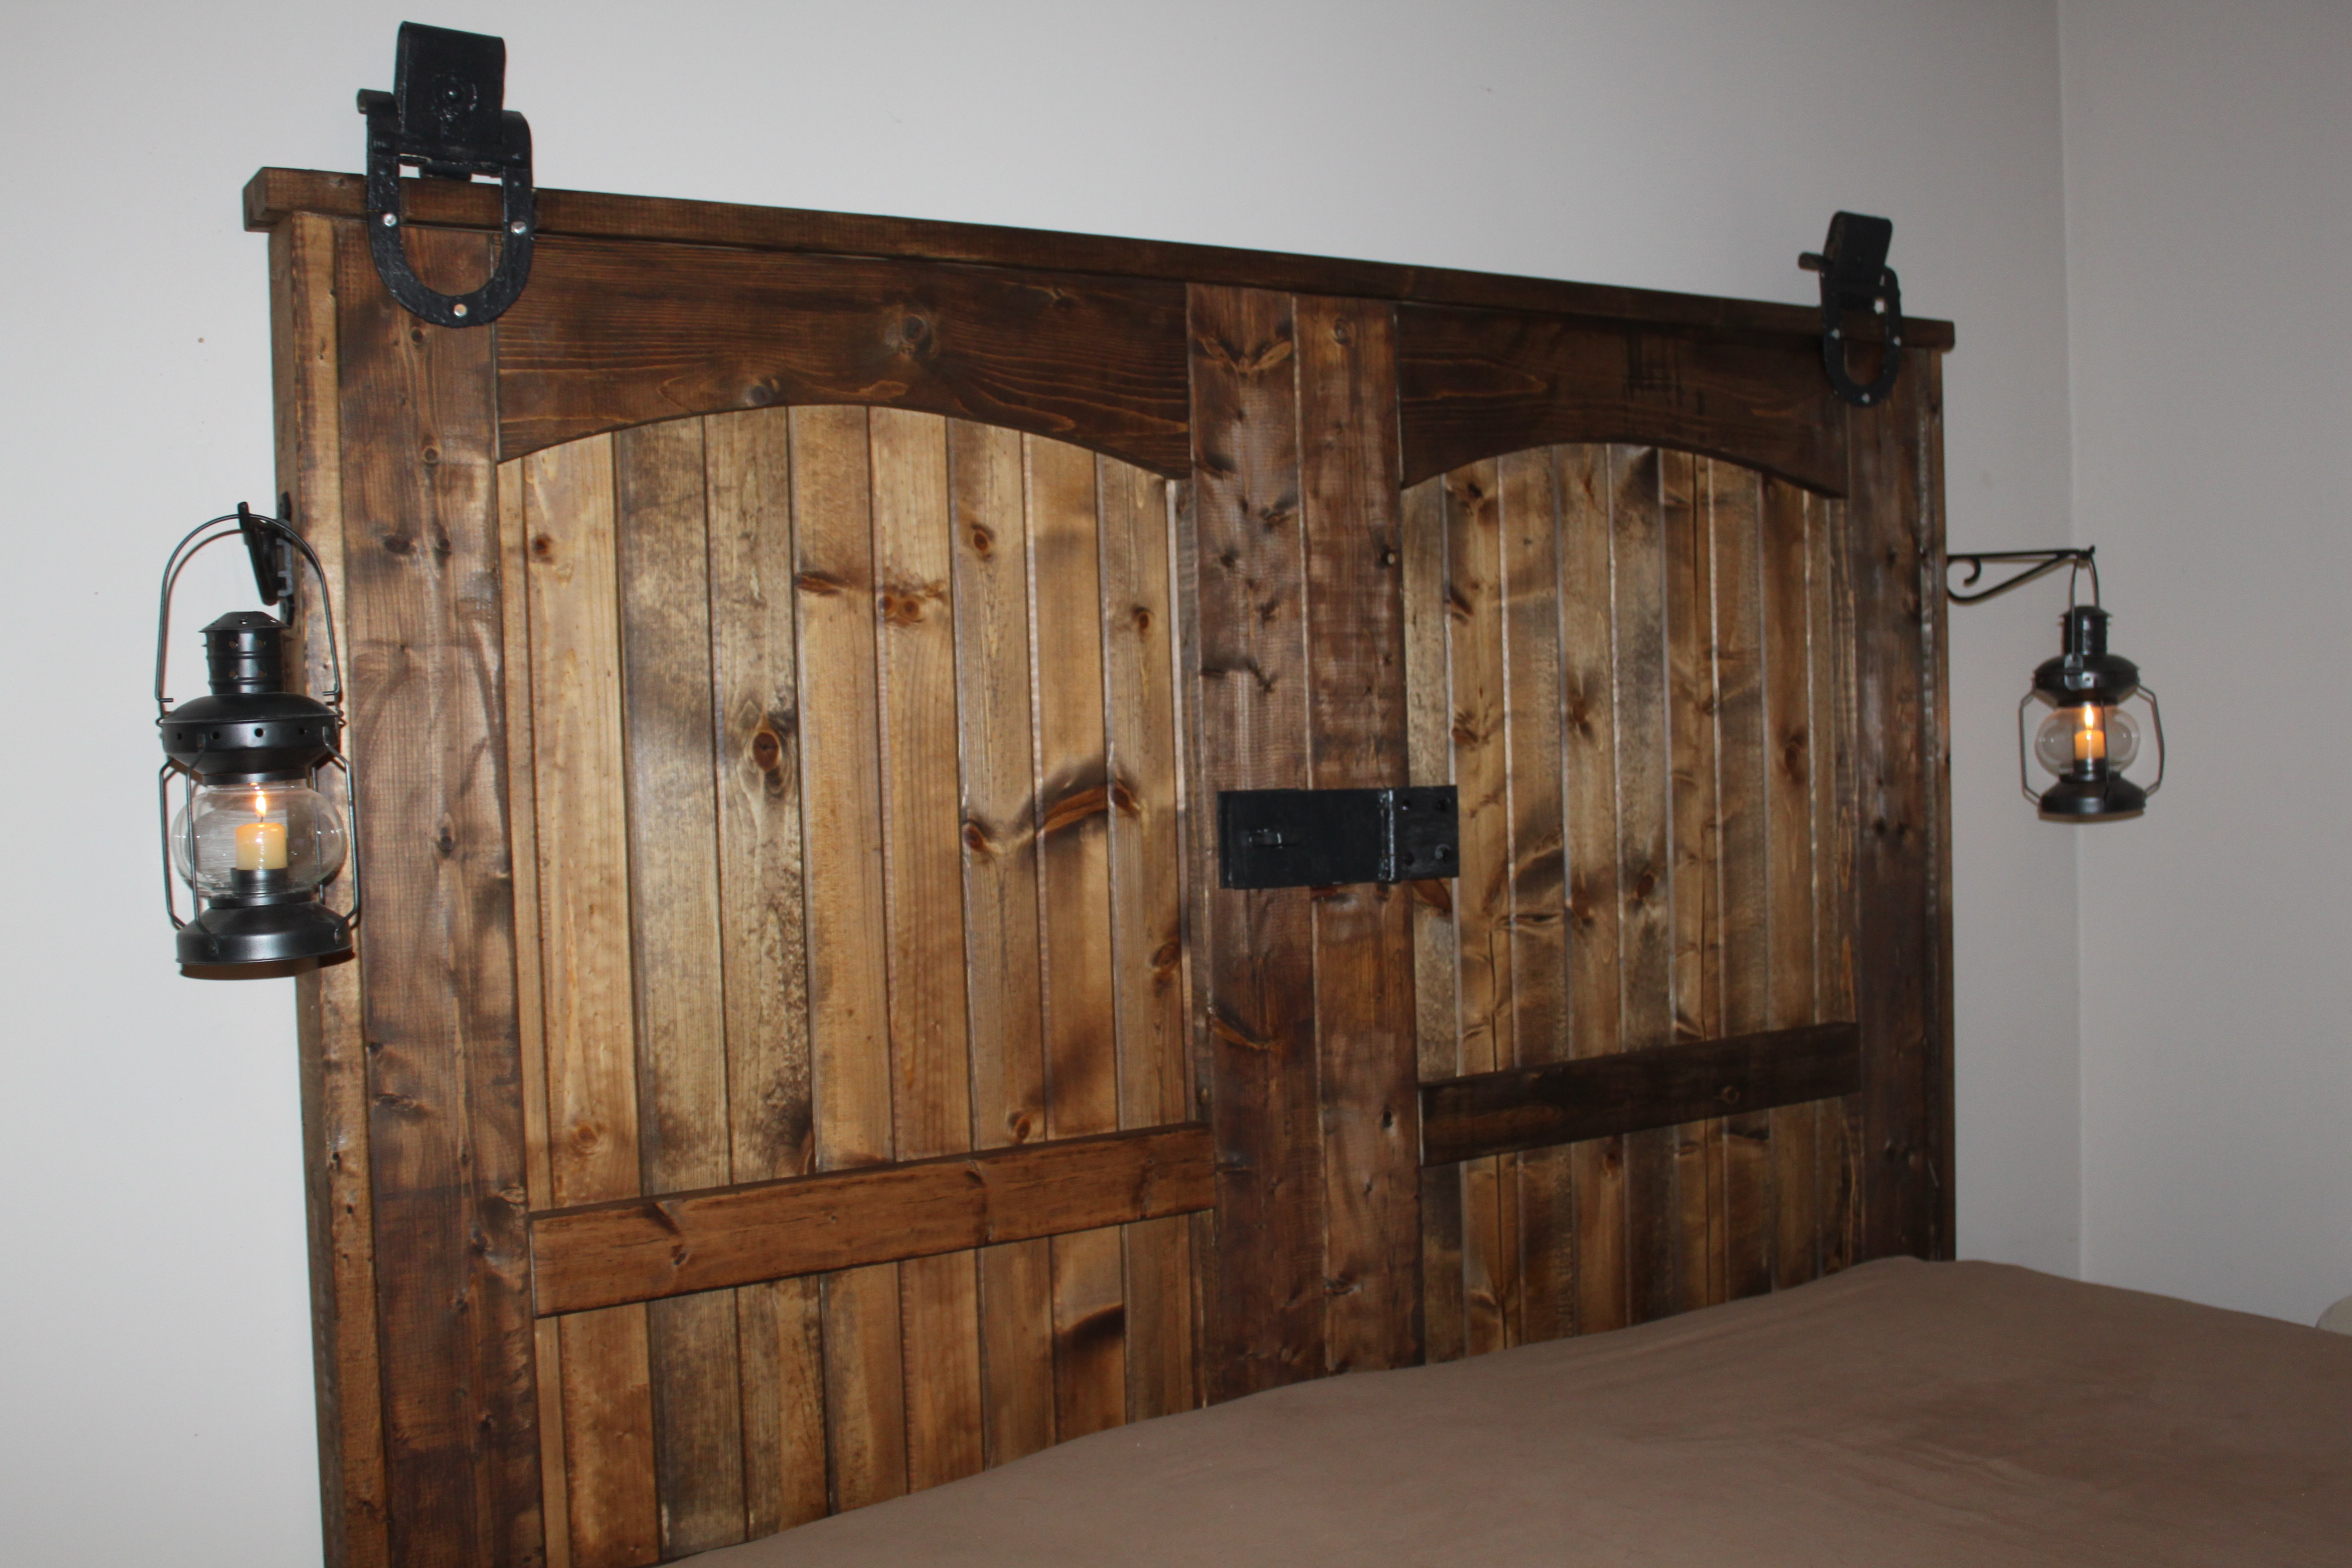 Our Completed New Old Barn Door Headboard